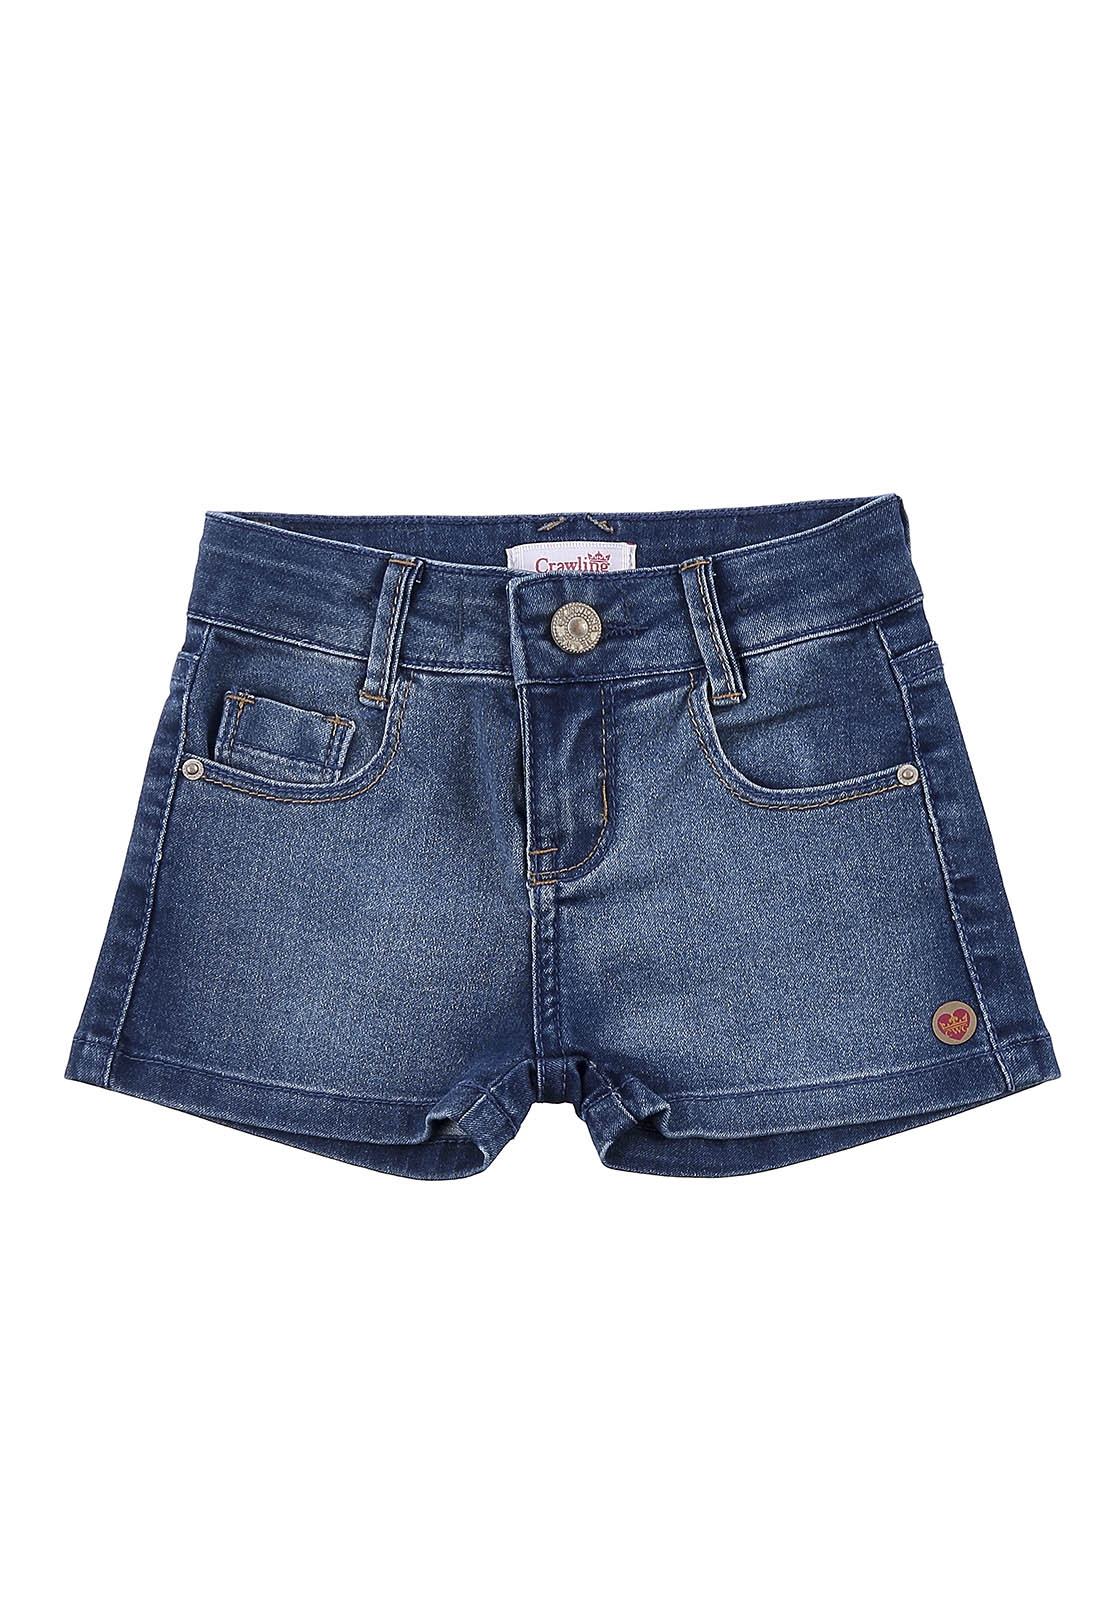 Short Jeans Crawling Baby Girl